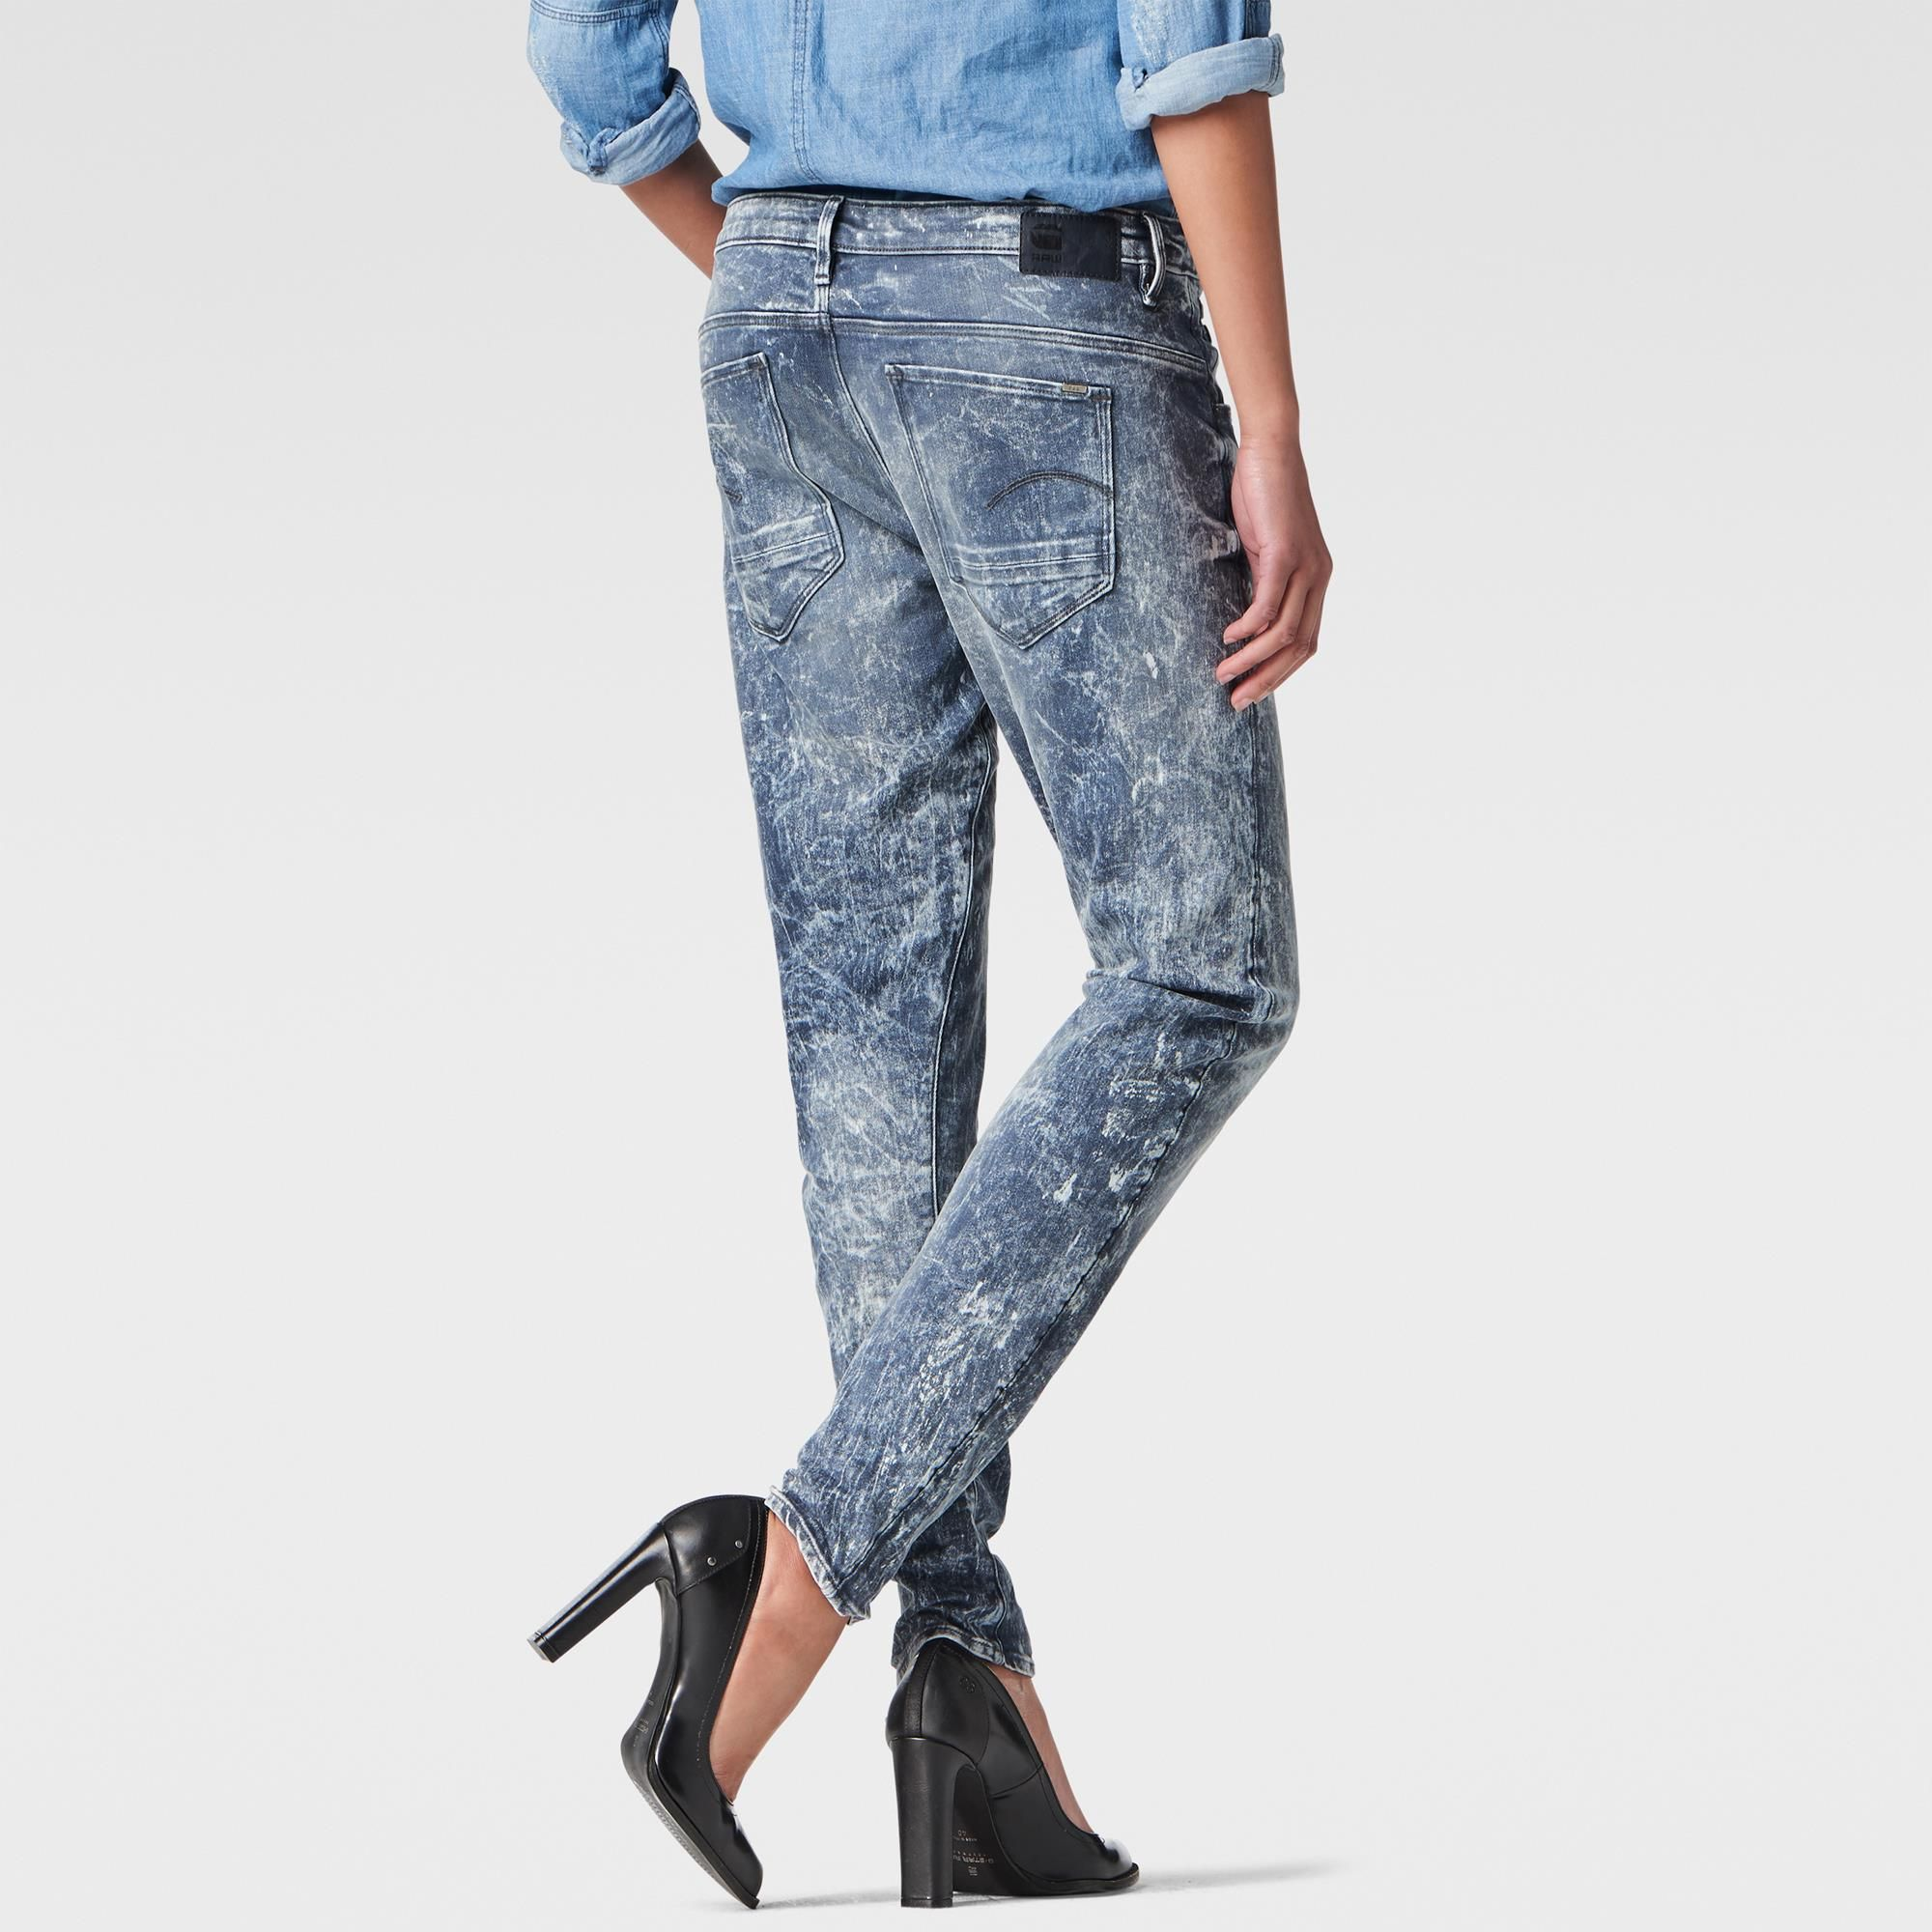 Jackets G-Star RAW 3301 Straight Leg Jeans Dark Aged Womens Jeans Jeans for Women COLOUR-dark aged